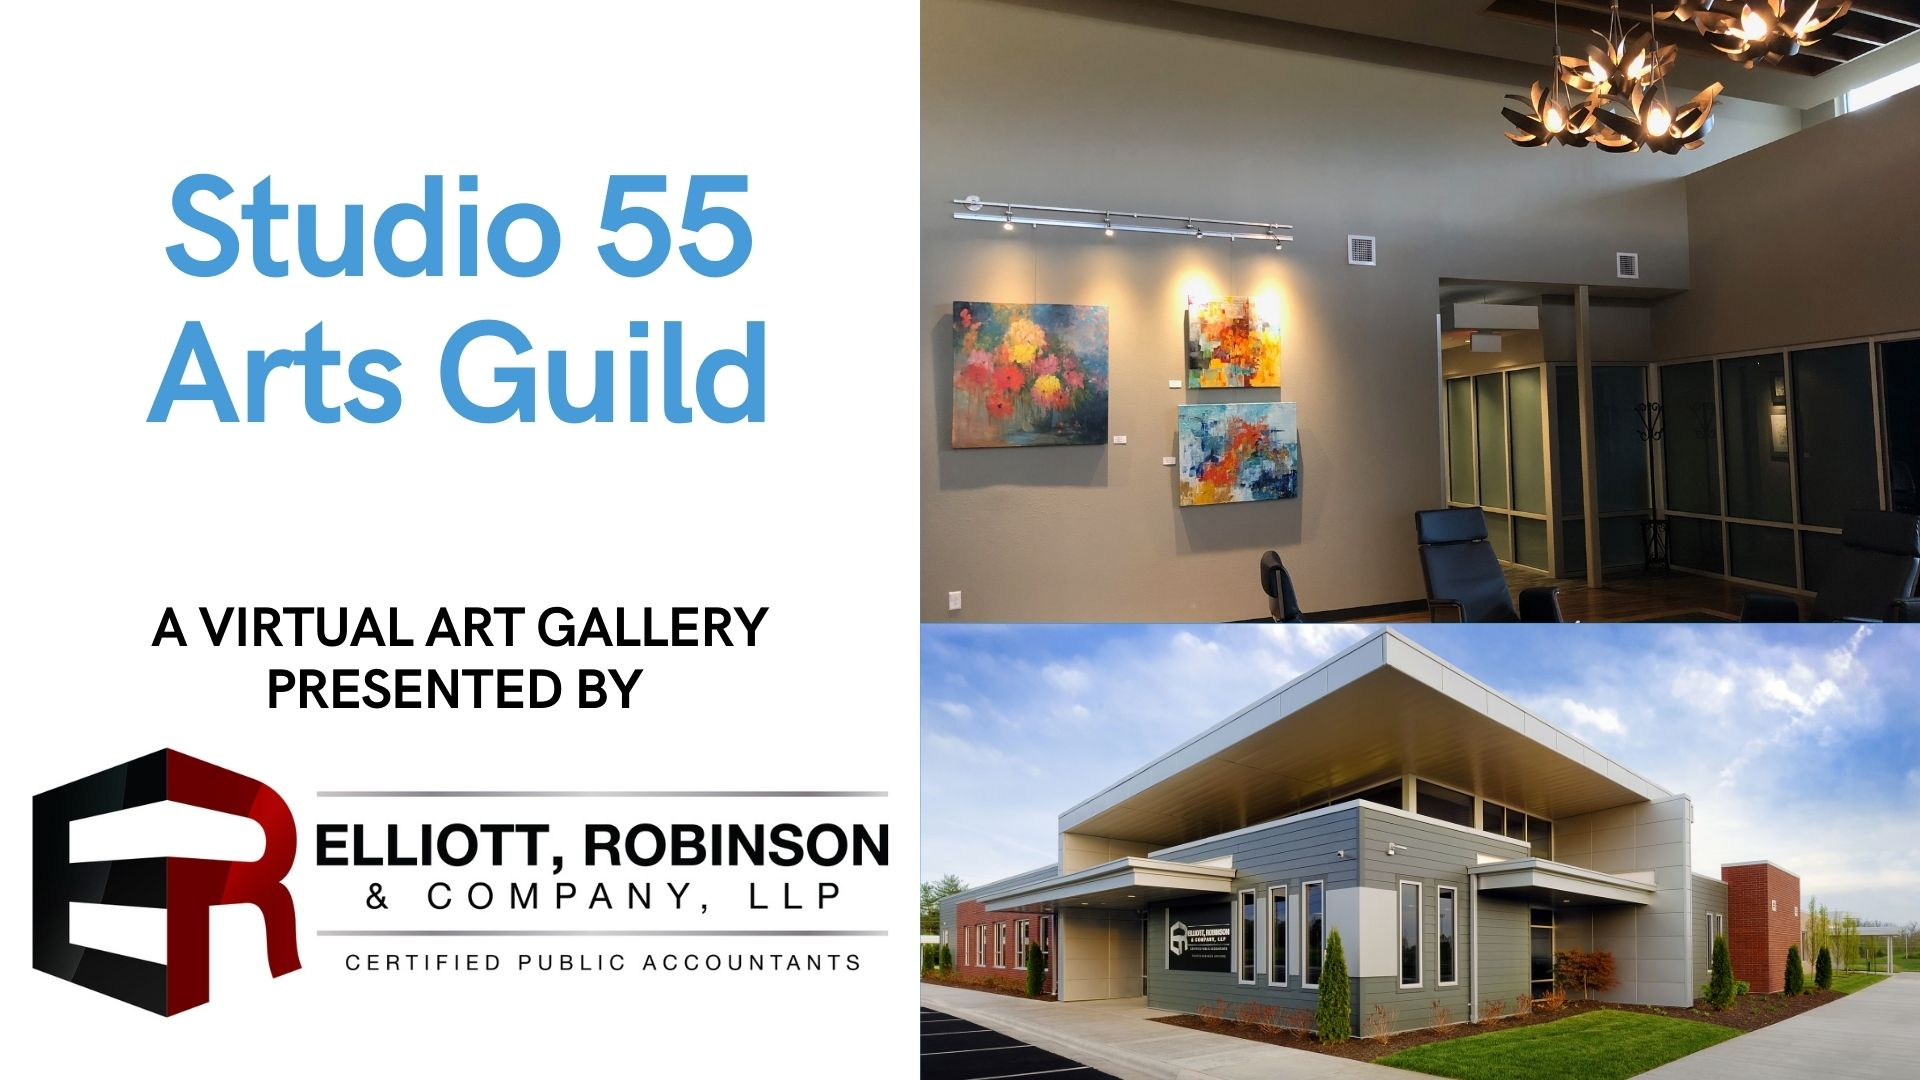 ERCPA Art Gallery 2021 | featuring Studio 55